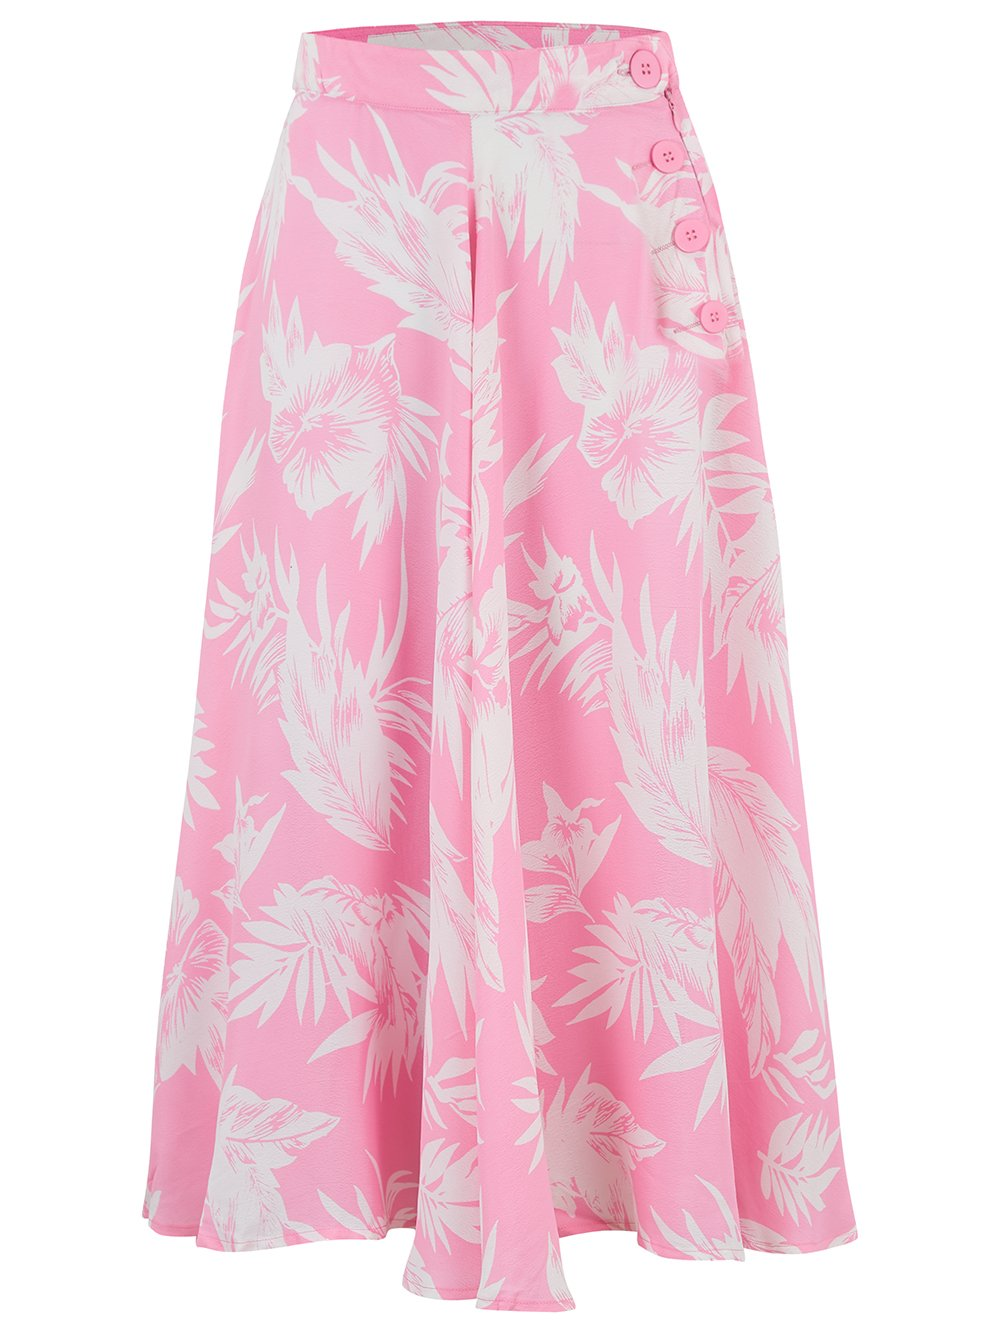 "The 1940s Vintage Inspired ""Isabelle"" Skirt in Pink Hawaii by The Seamstress of Bloomsbury"